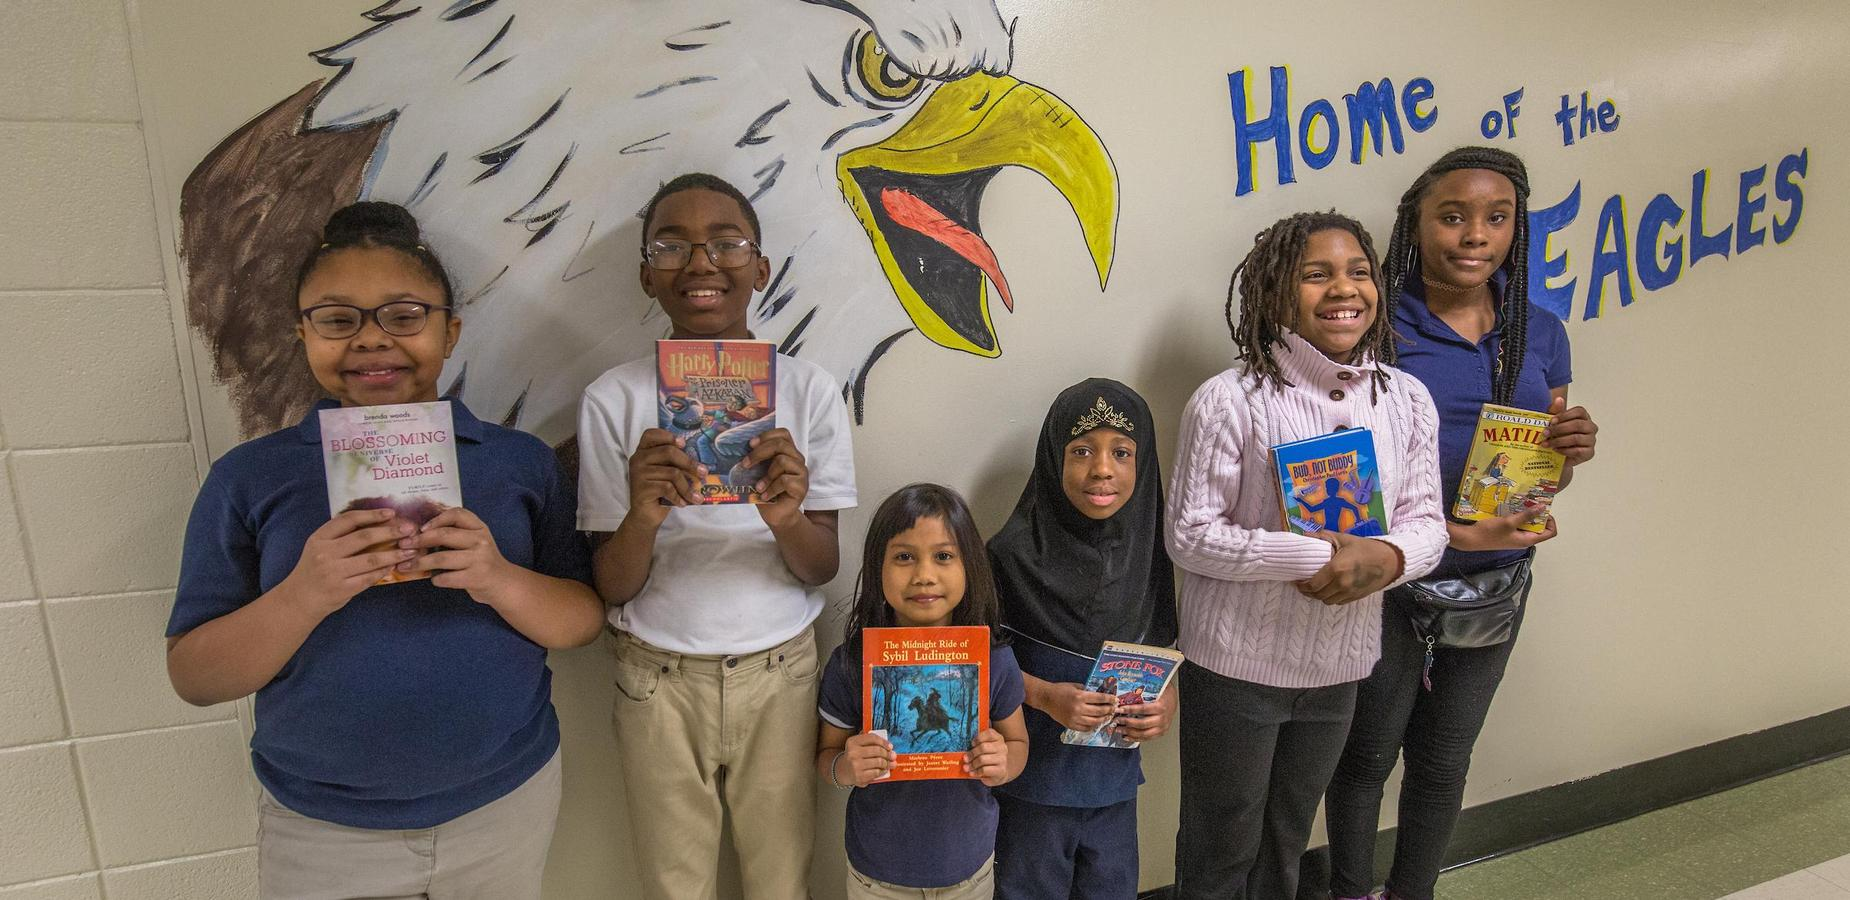 Students standing with books in front of mural